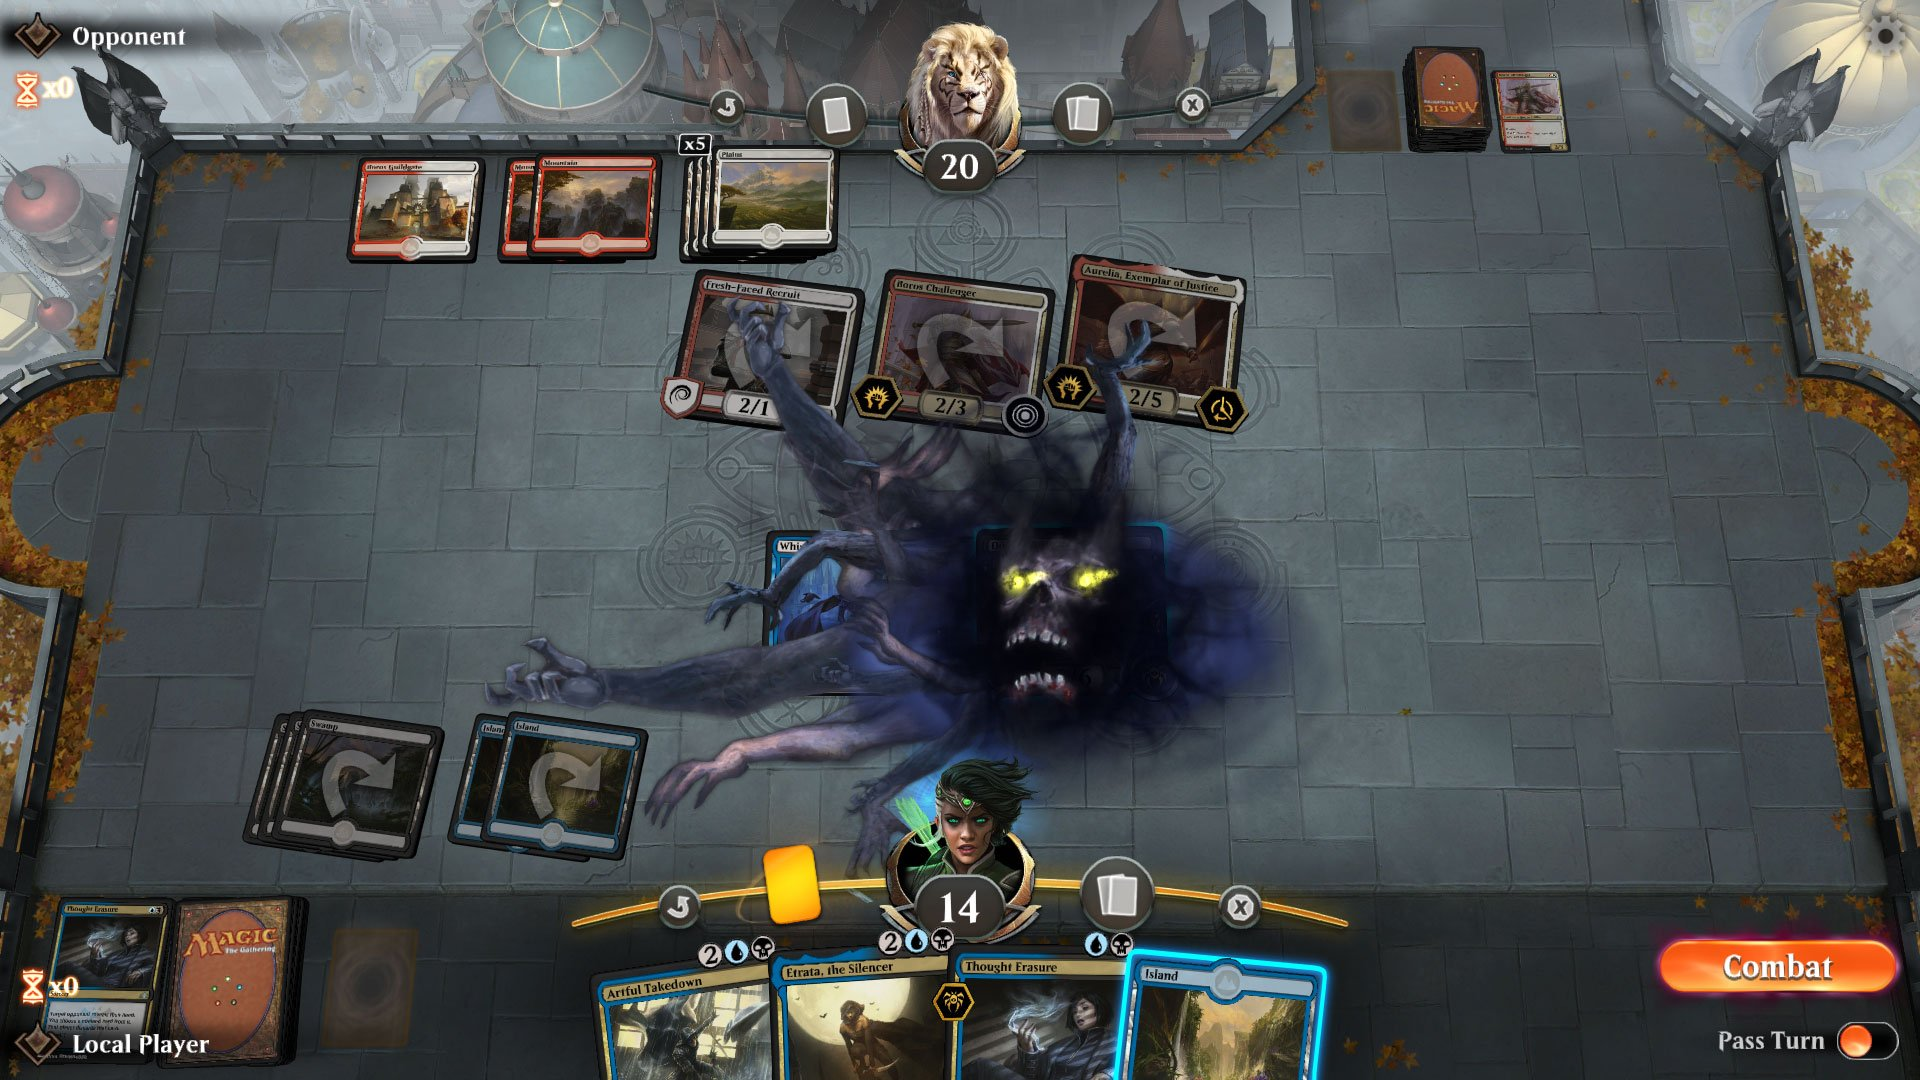 Magic: The Gathering Arena review: Do you believe in magic